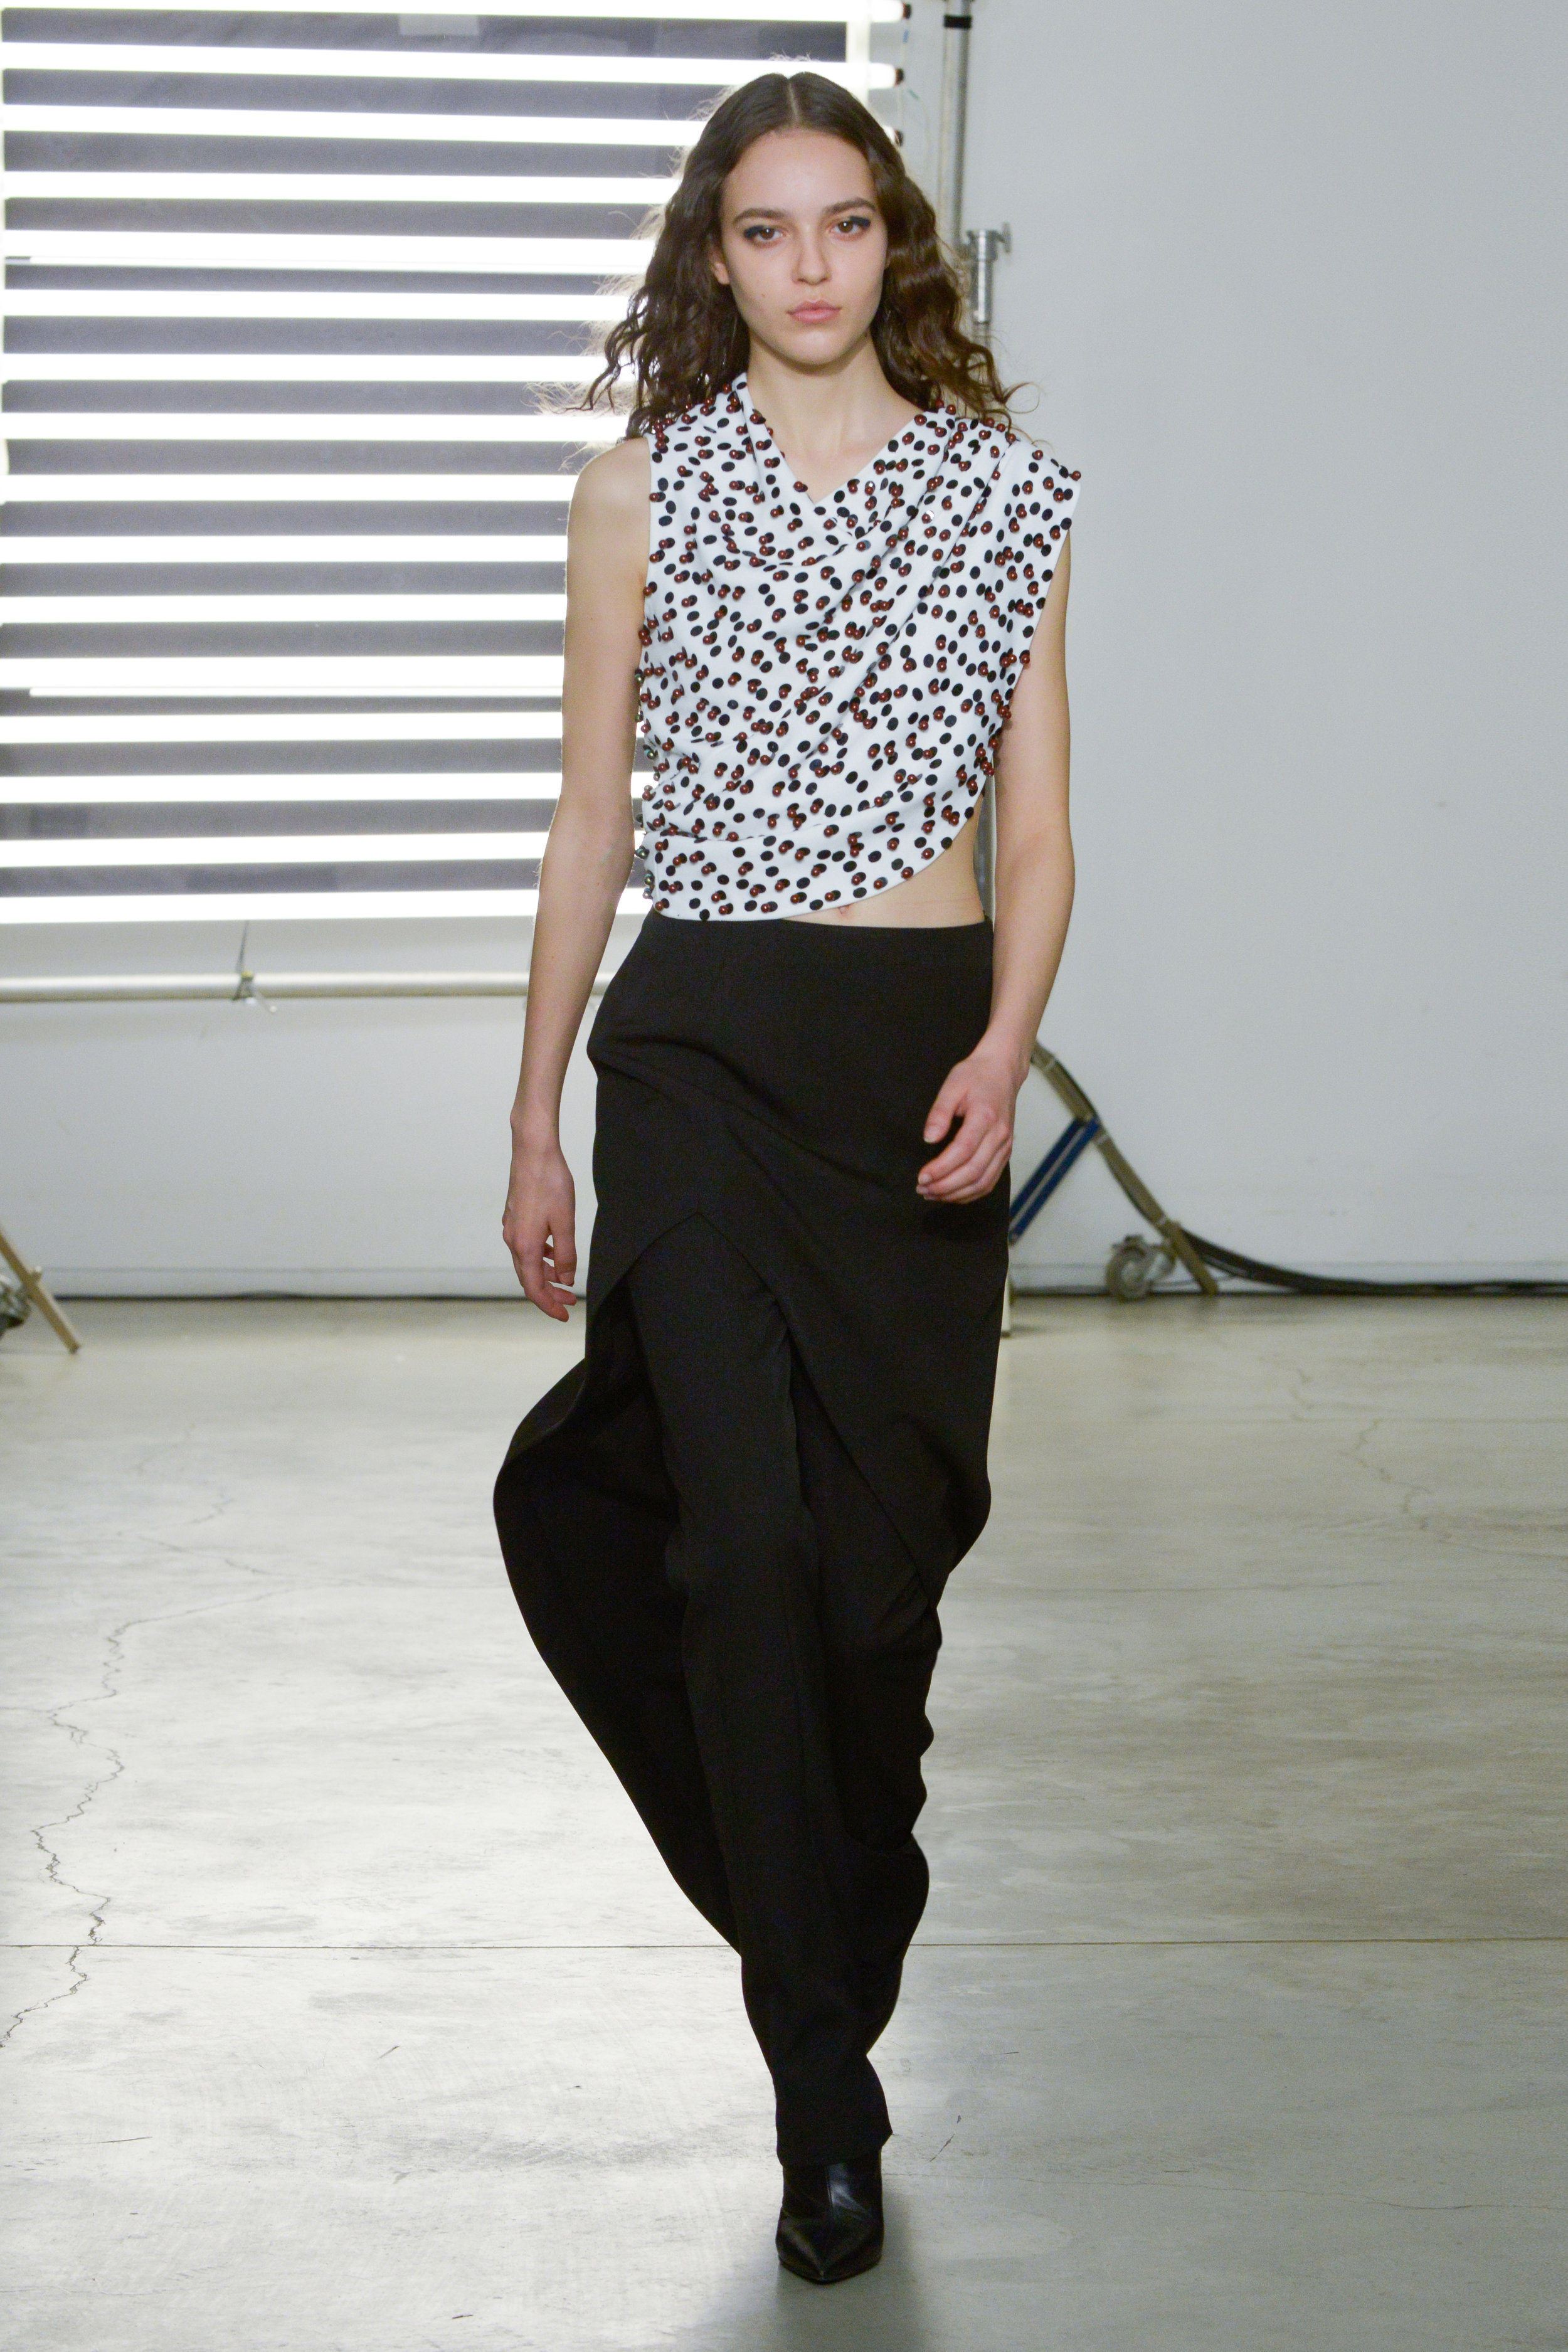 Look 19 Swarovski embroidered white top with black wool twill pant and black wool twill skirt.